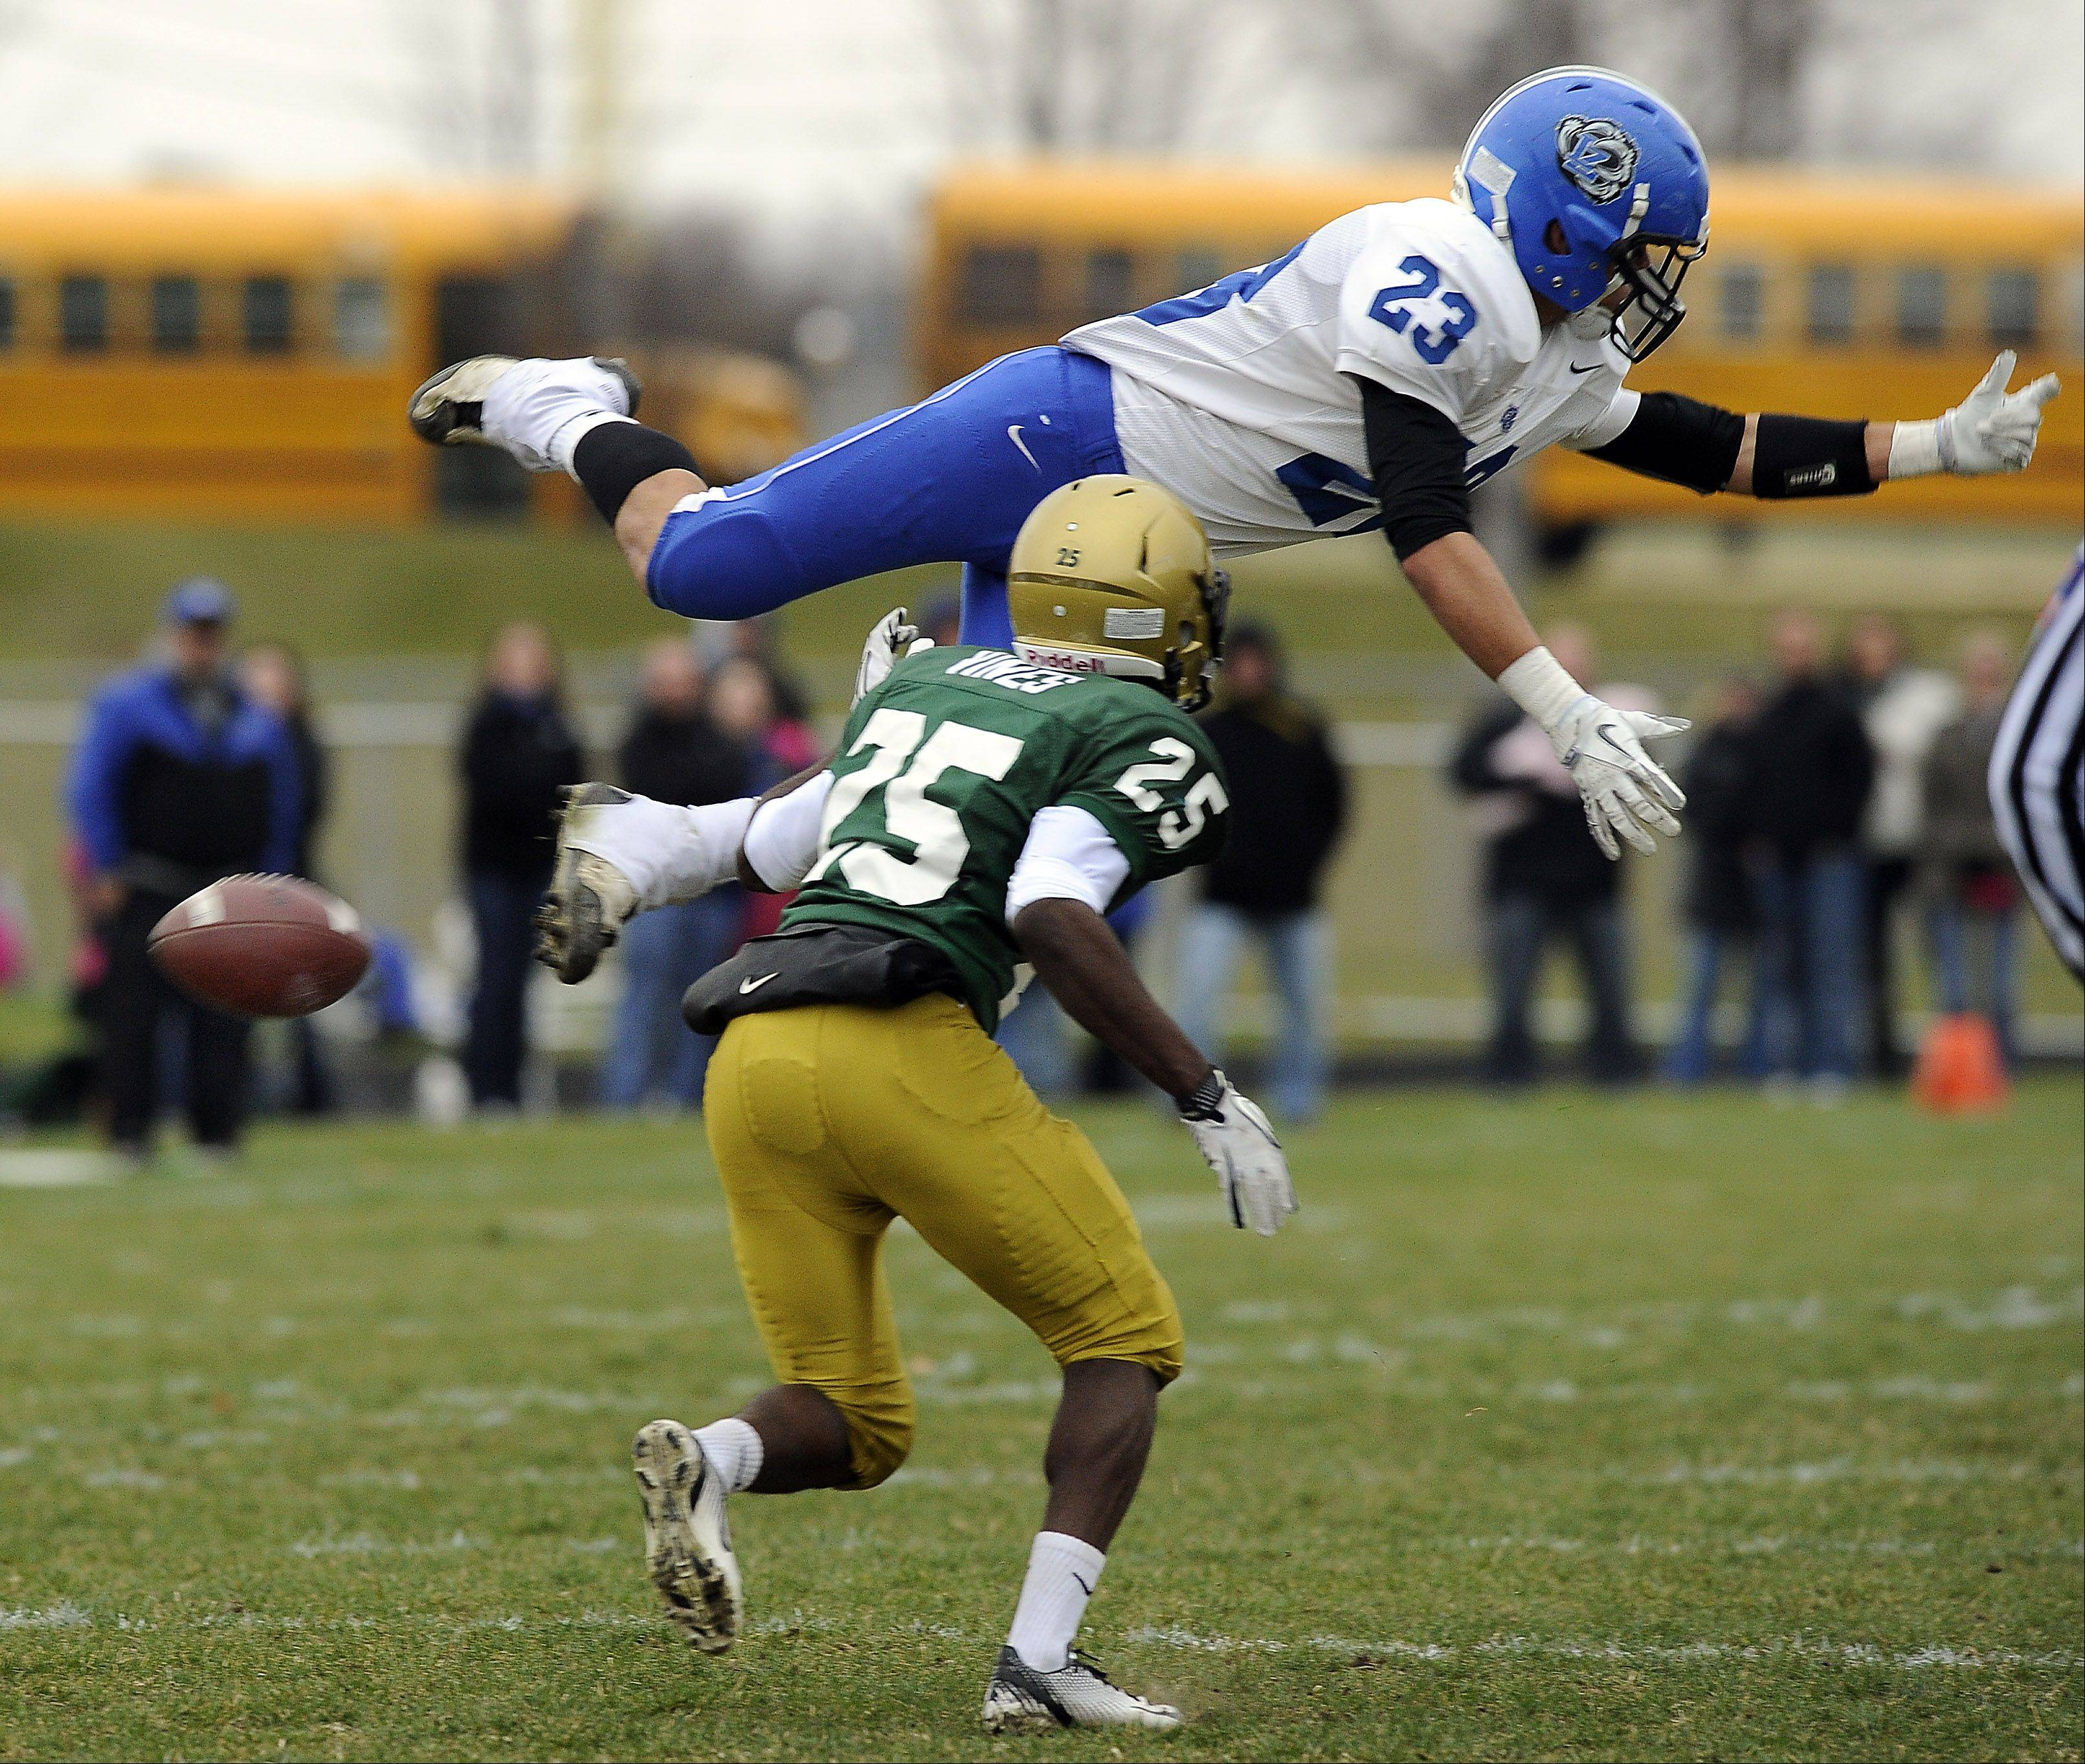 Lake Zurich�s Grant Soucy soars over Rockford Boylan�s DeMarcus Vines during the second quarter of the teams� Class 7A state semifinal matchup last season in Rockford. This year they�re meeting in the quarterfinals, at 1 p.m. Saturday at Lake Zurich, with both Soucy and Vines again key players for their teams.